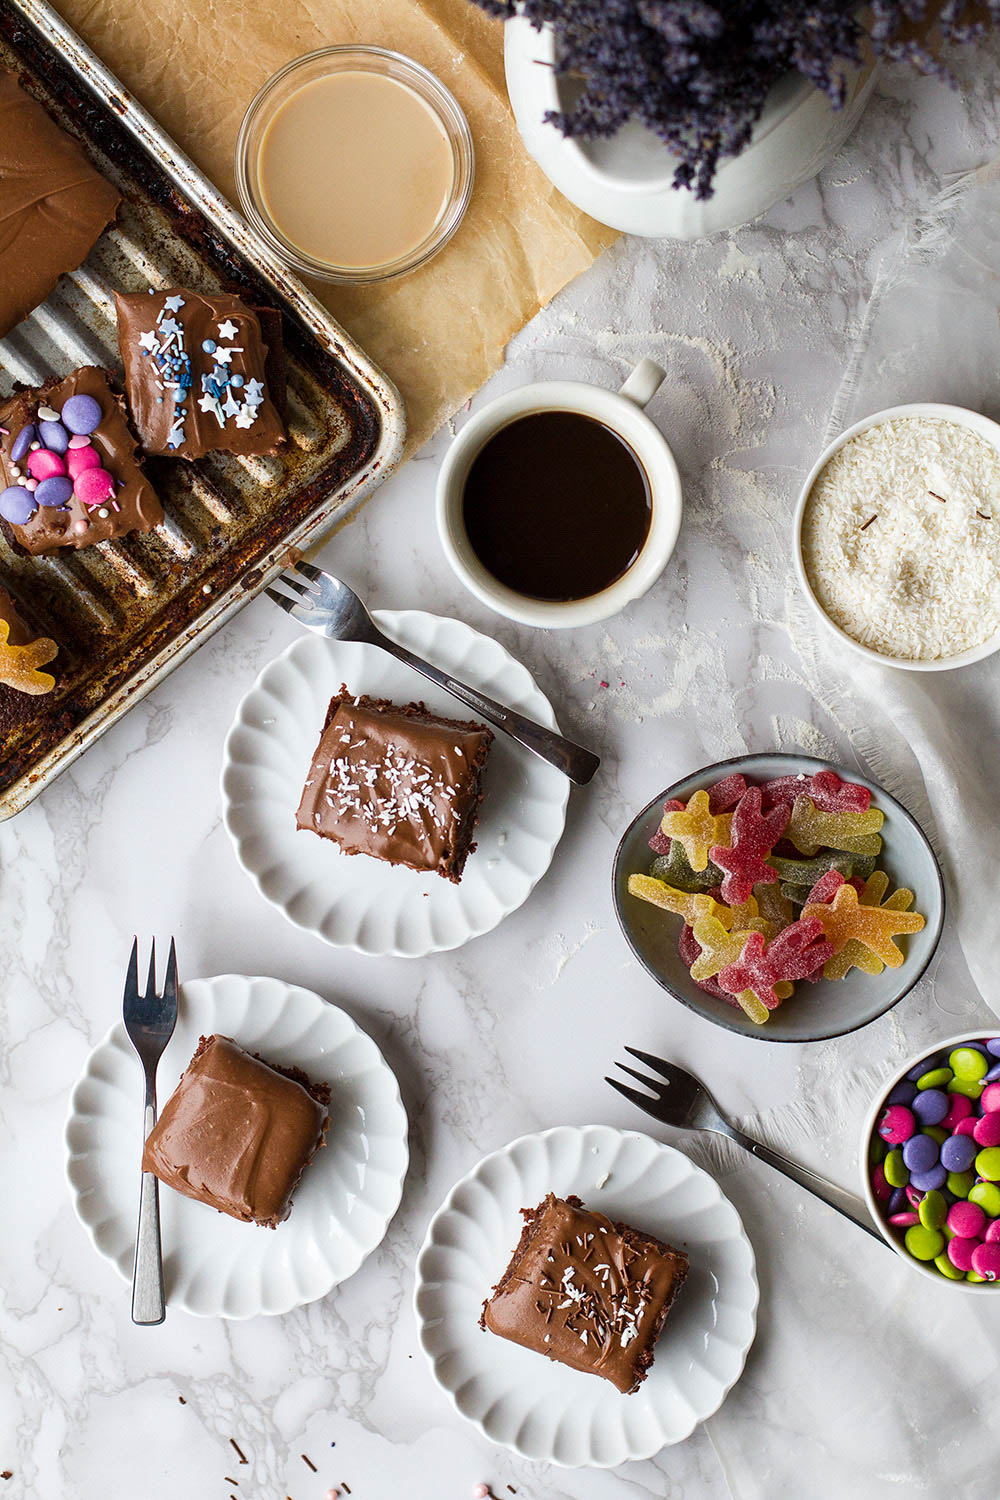 Marble table with several vintage plates with square slices of chocolate cake.